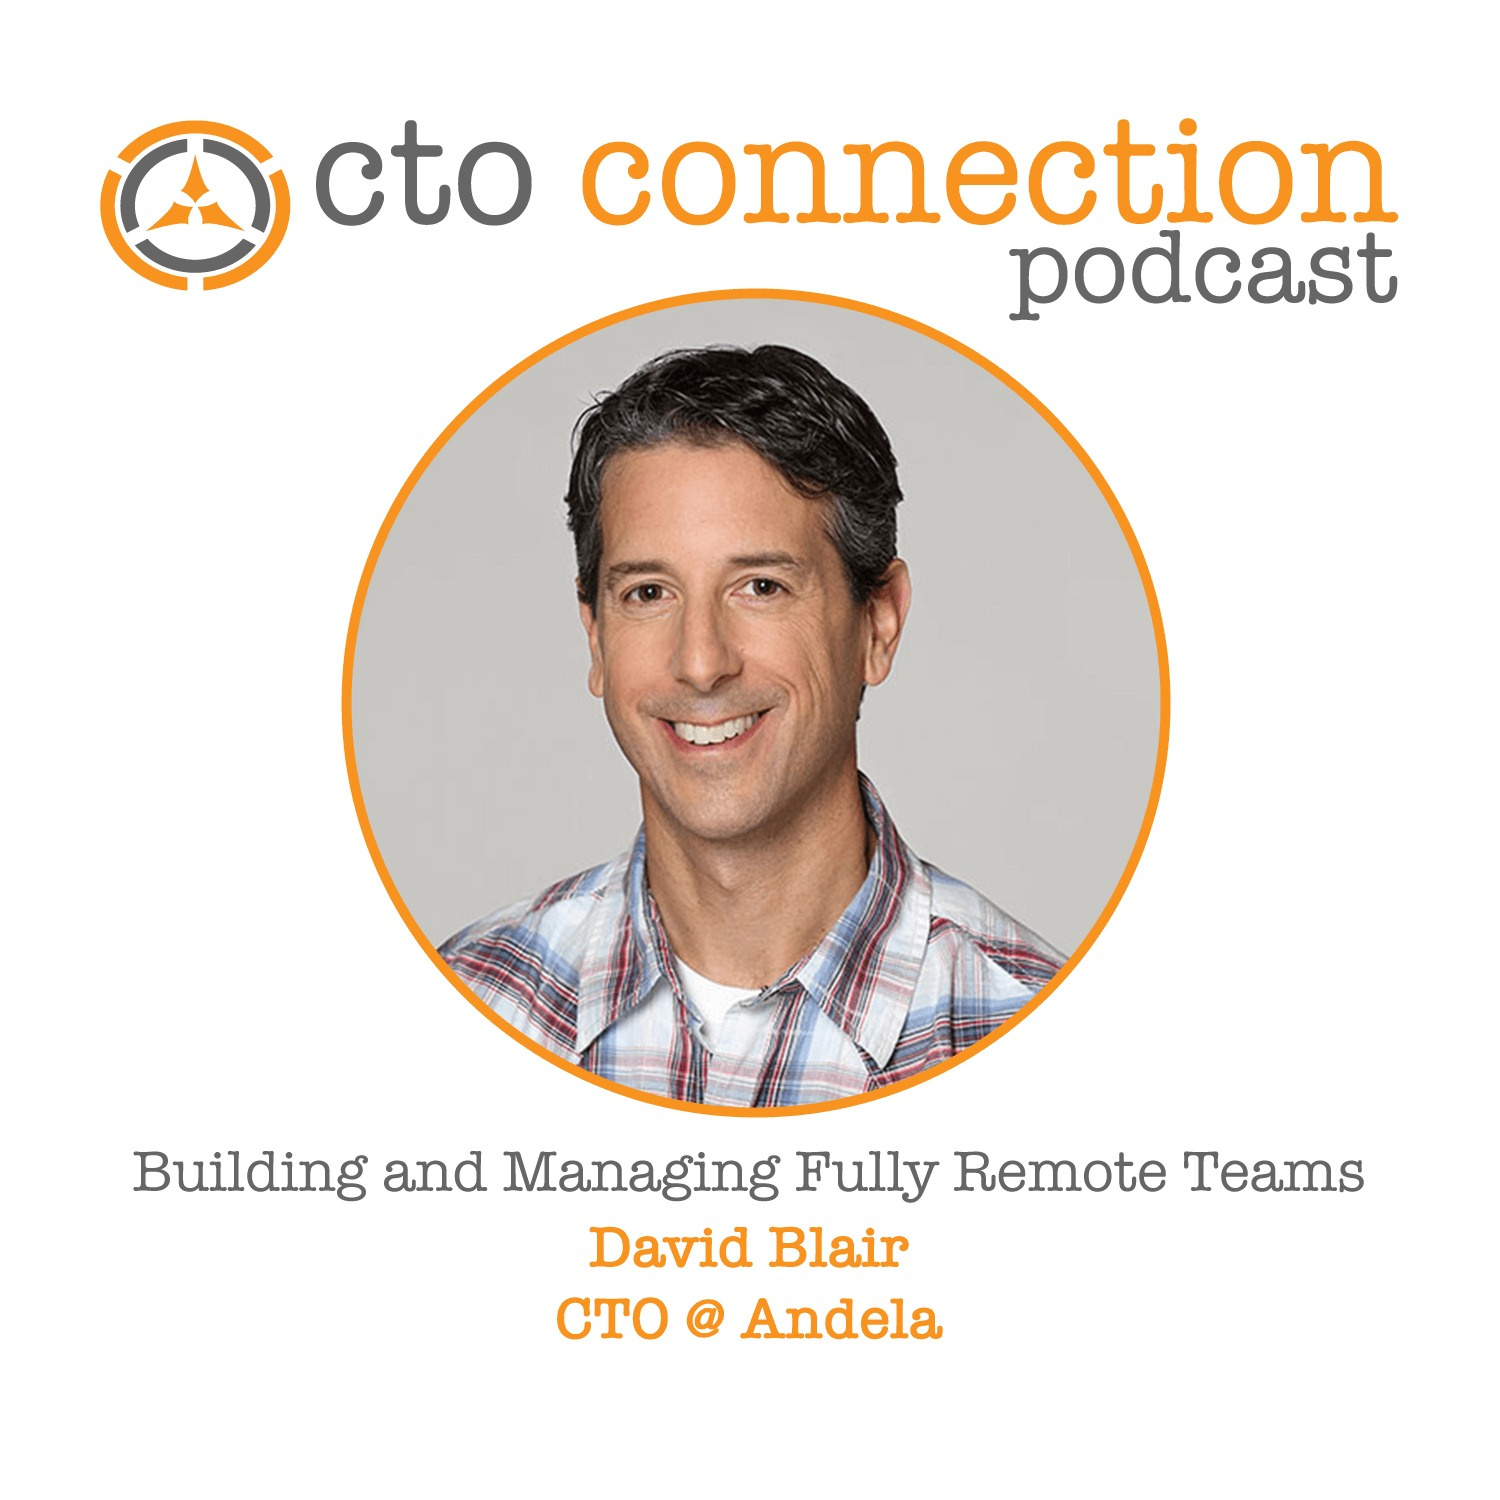 Building and Managing Fully Remote Teams with David Blair